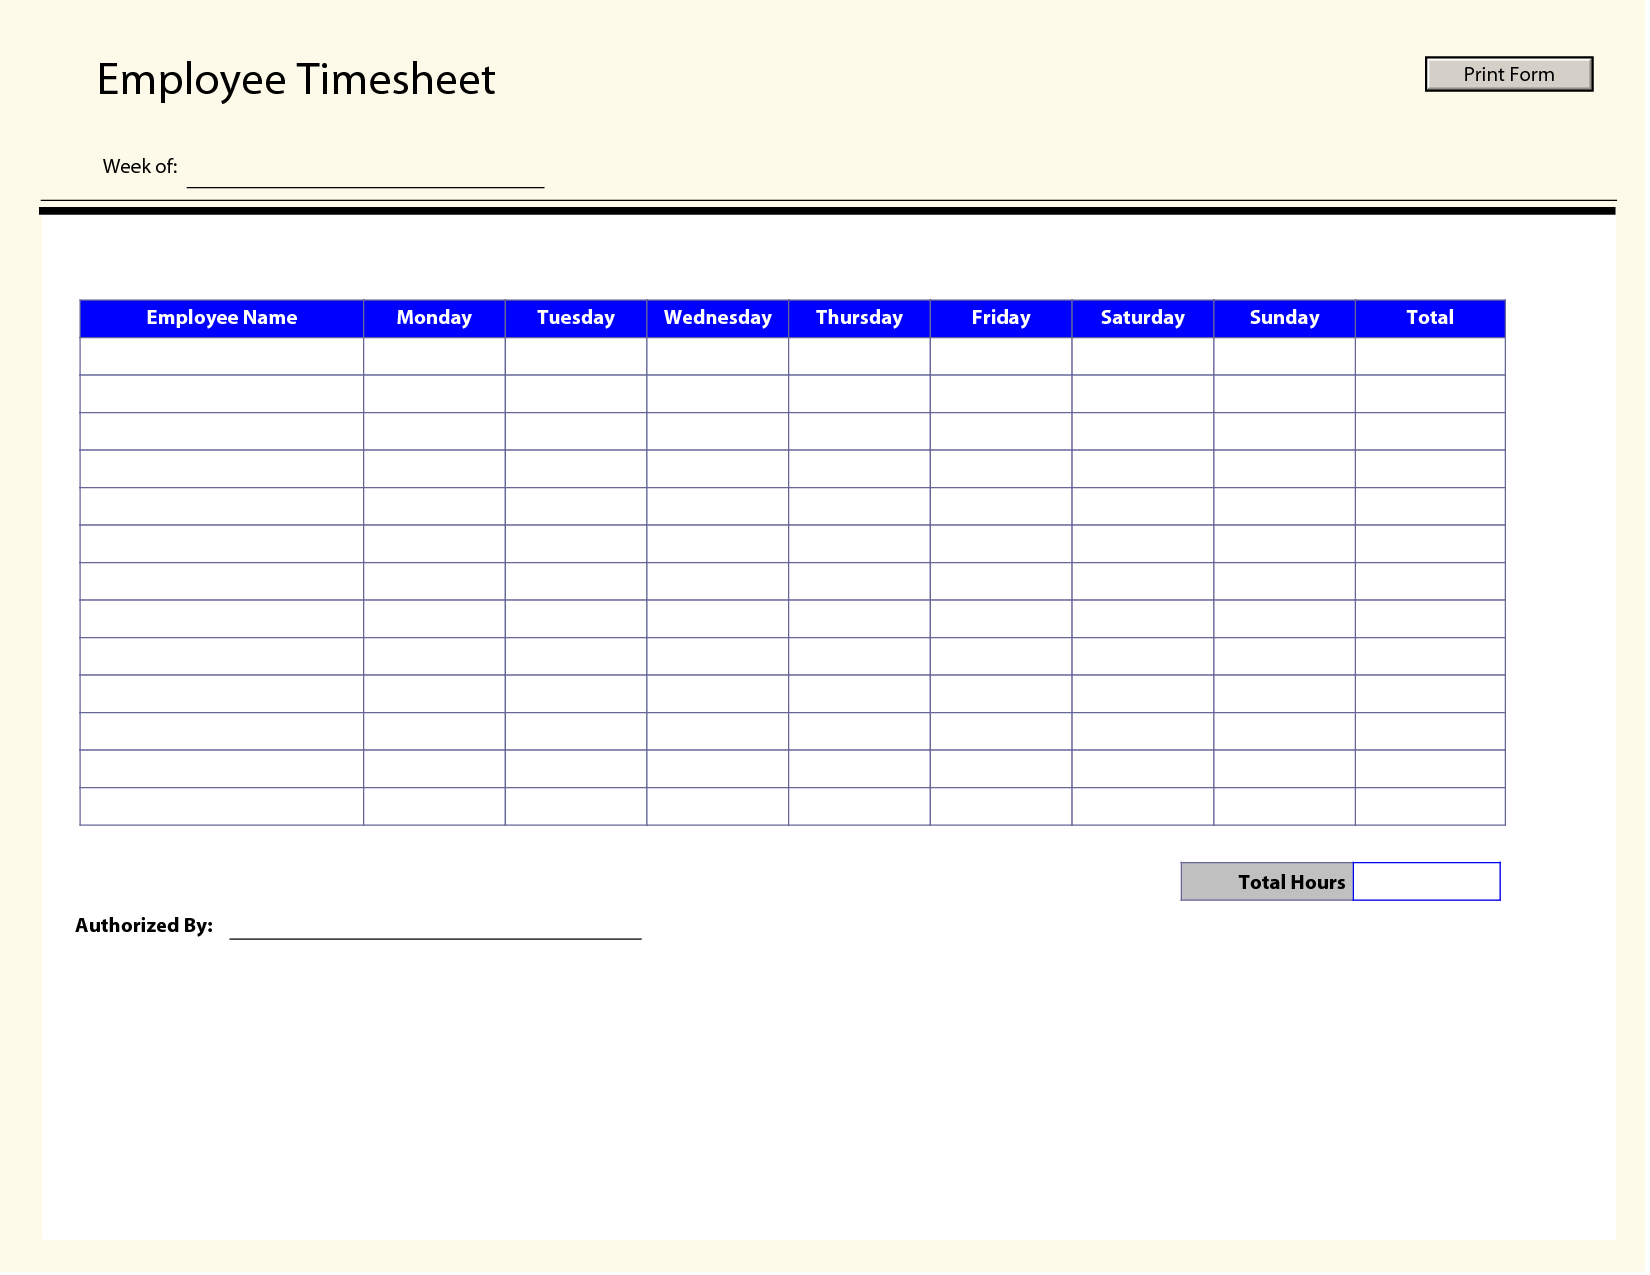 9 Images of Printable Employee Timesheet Templates